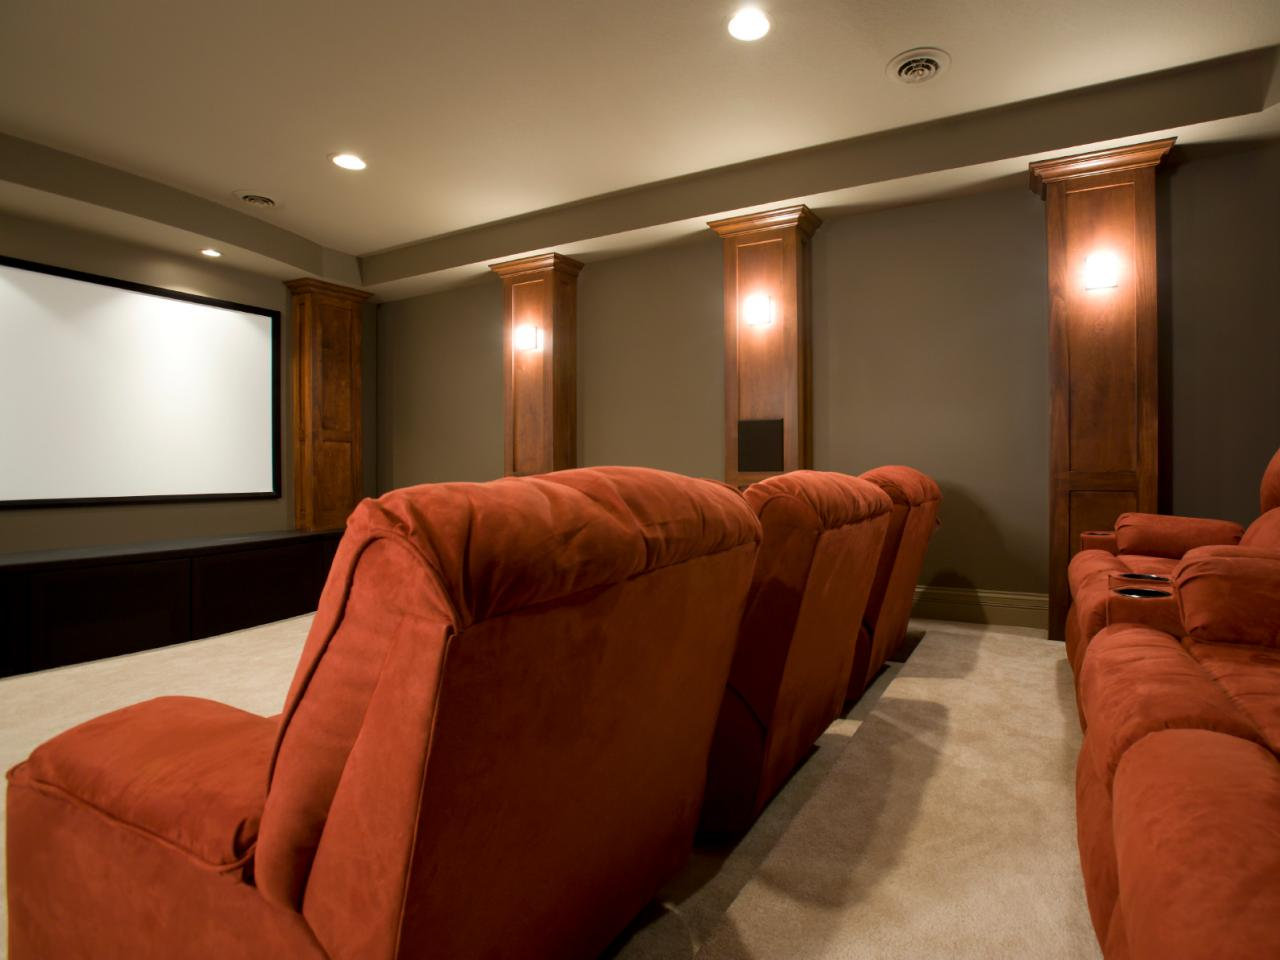 Contemporary Home Theater With Plush Stadium Seating